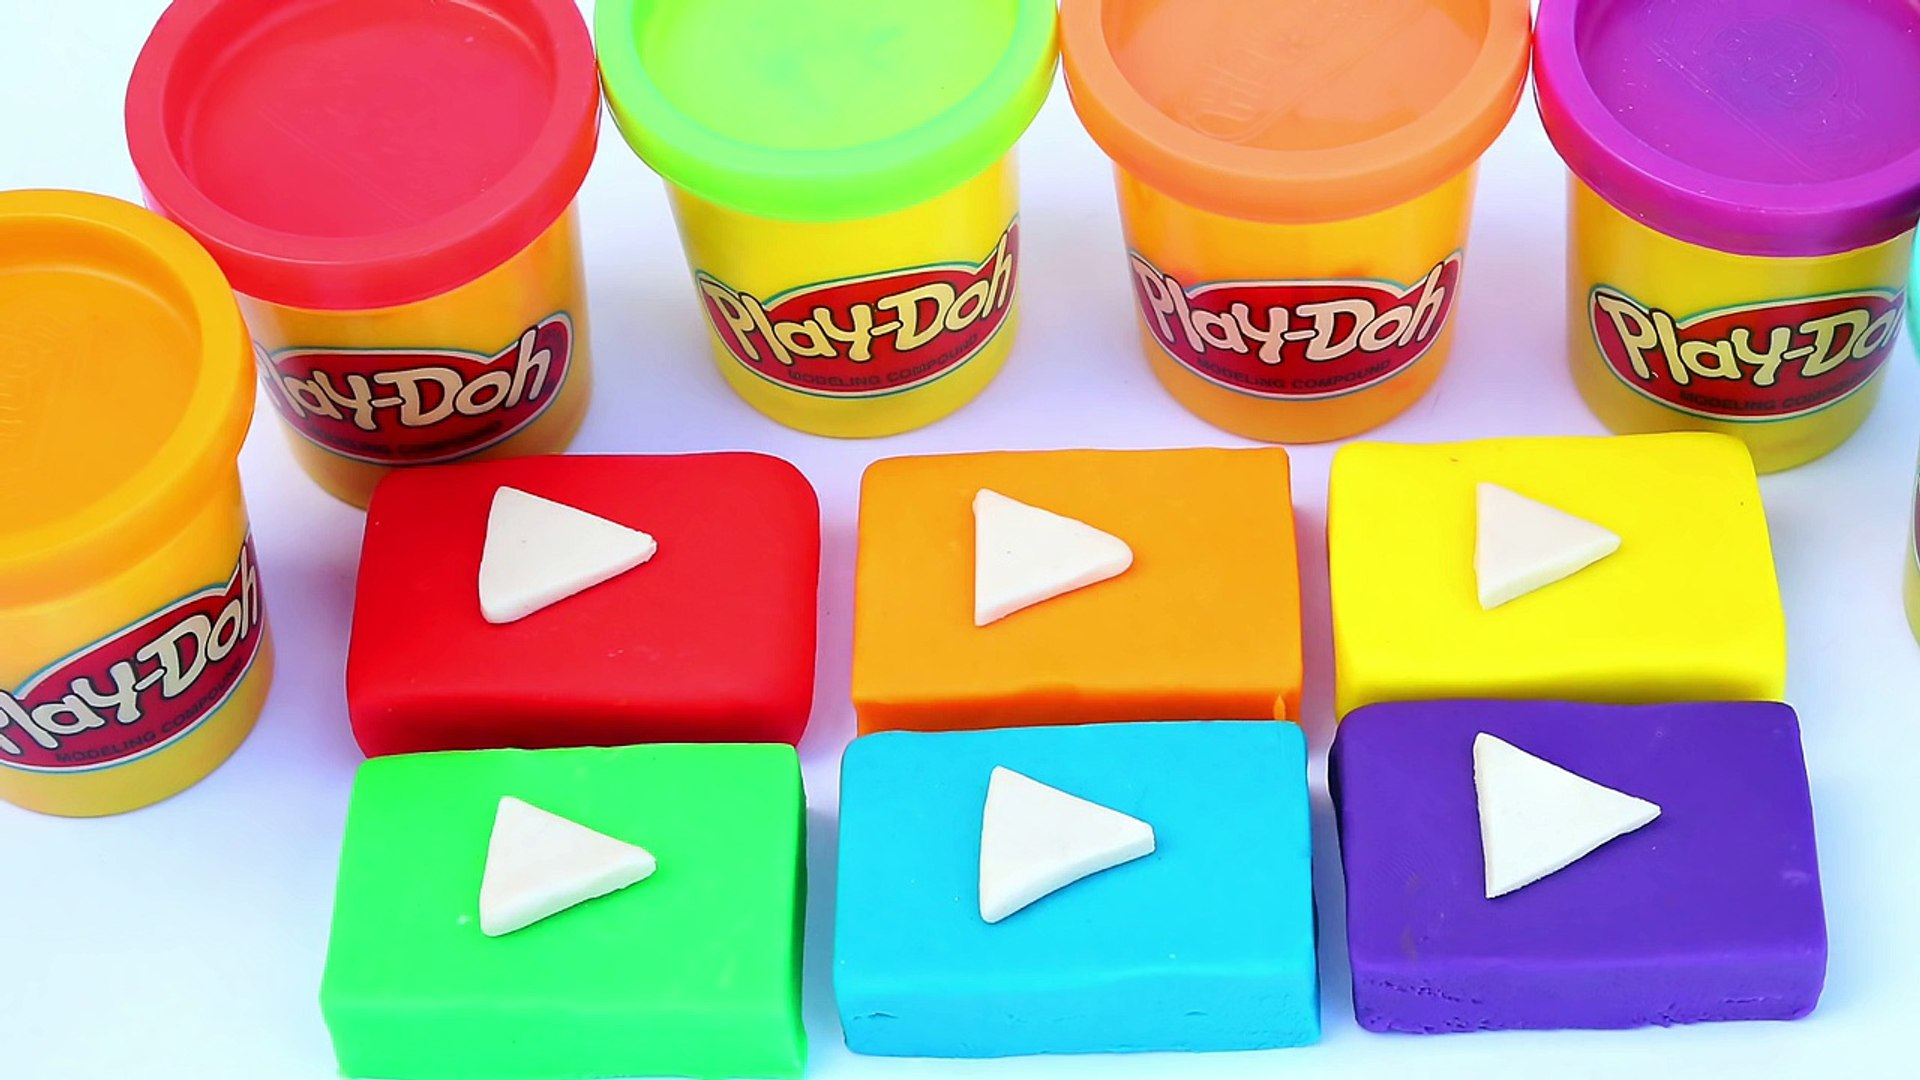 YouTube Play Buttons Play Doh Fun Kids Video